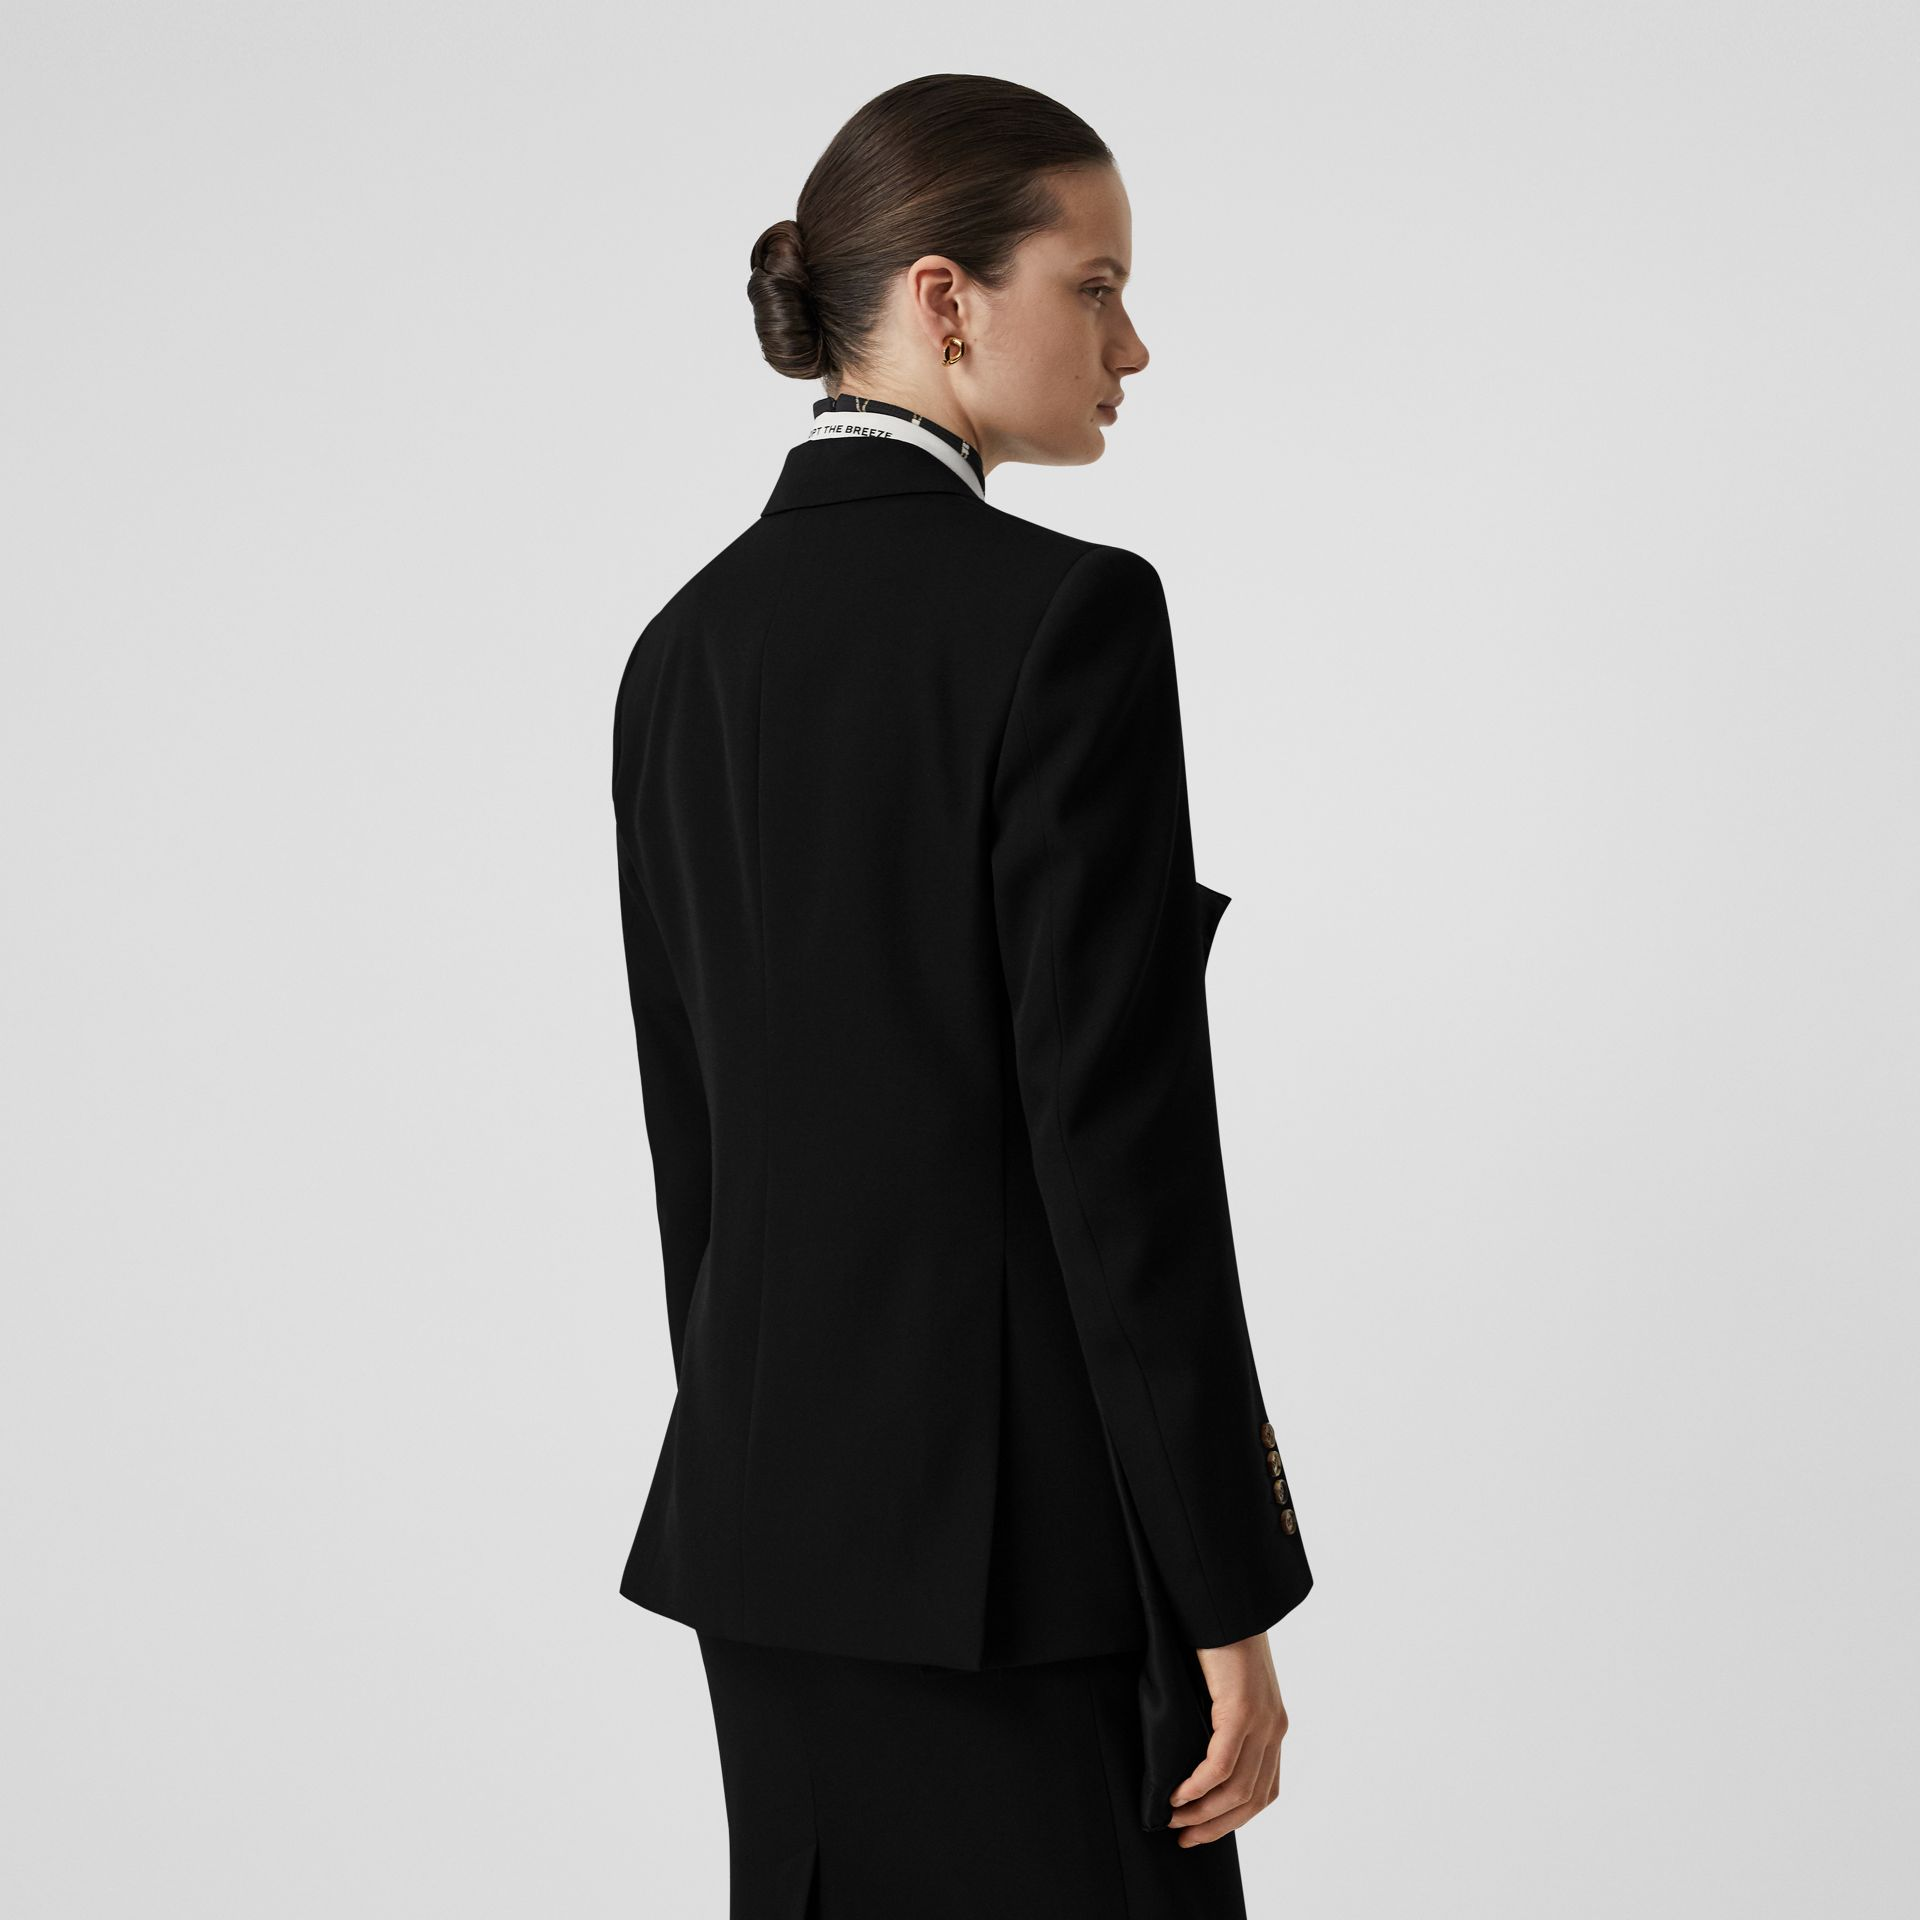 Logo Panel Detail Wool Tailored Jacket in Black - Women | Burberry United States - gallery image 2